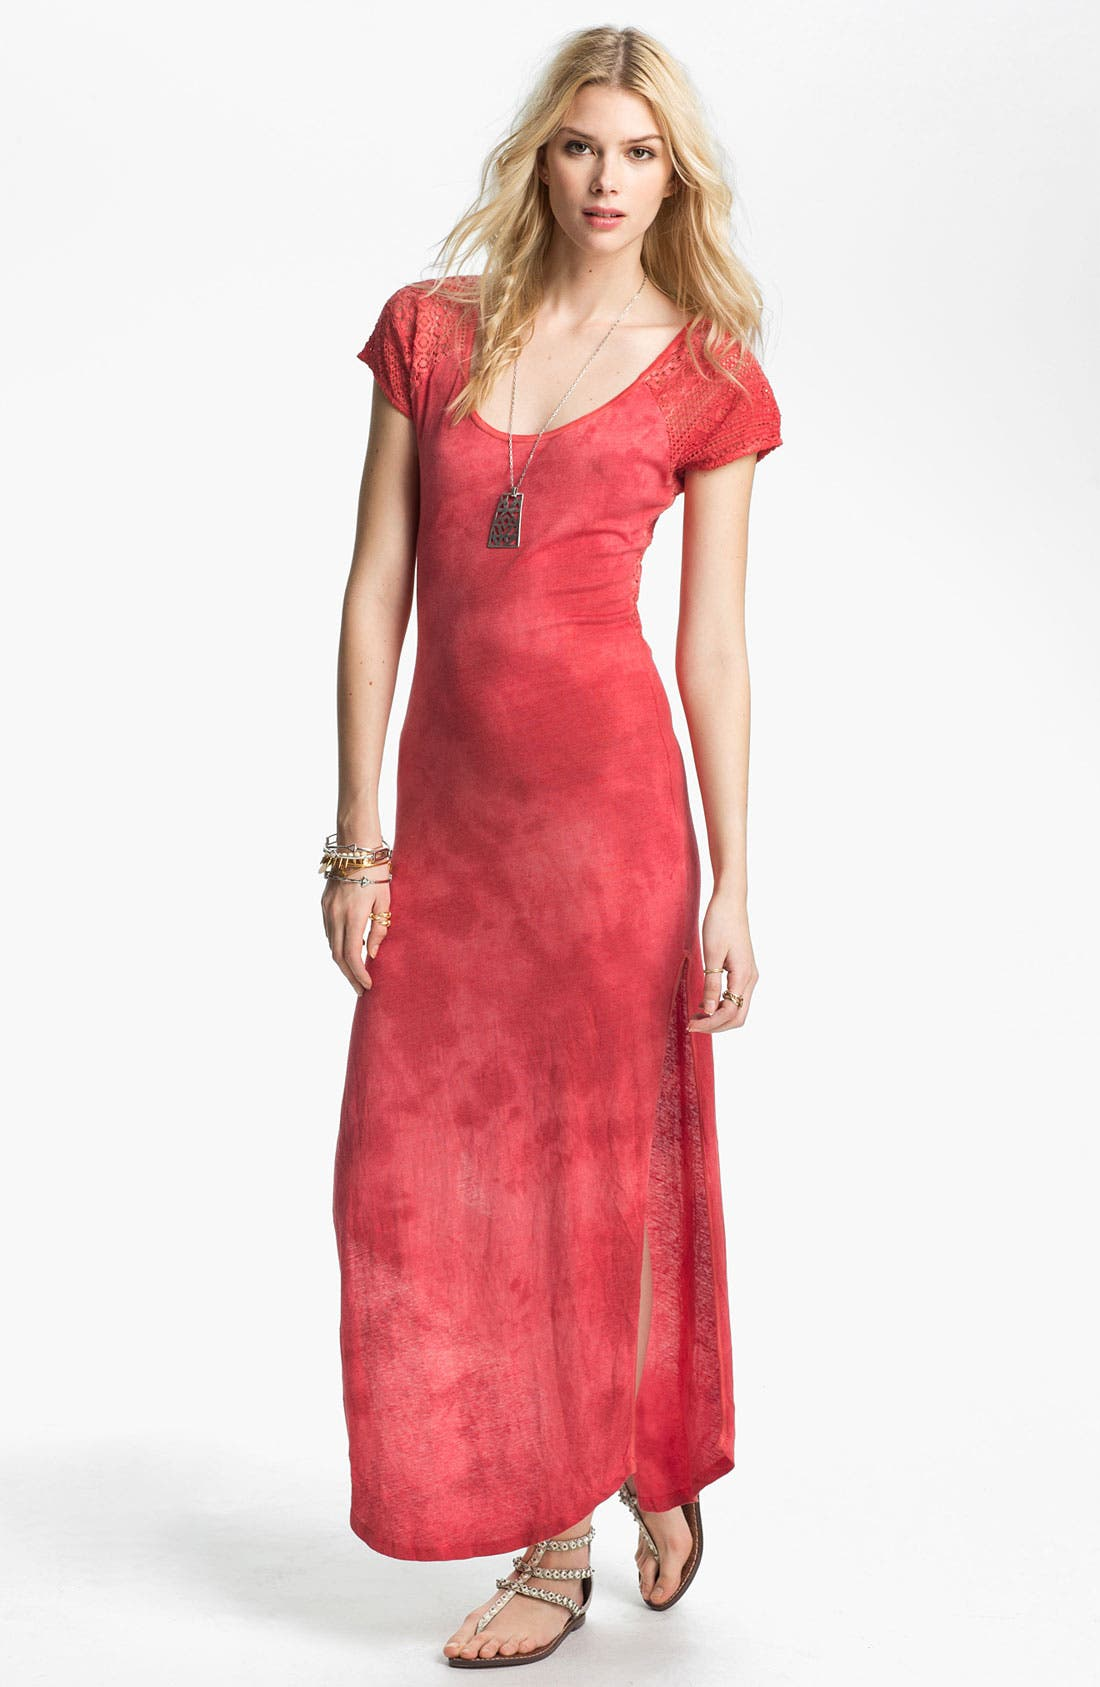 Main Image - Free People Lace Detail Tie Dye Maxi Dress